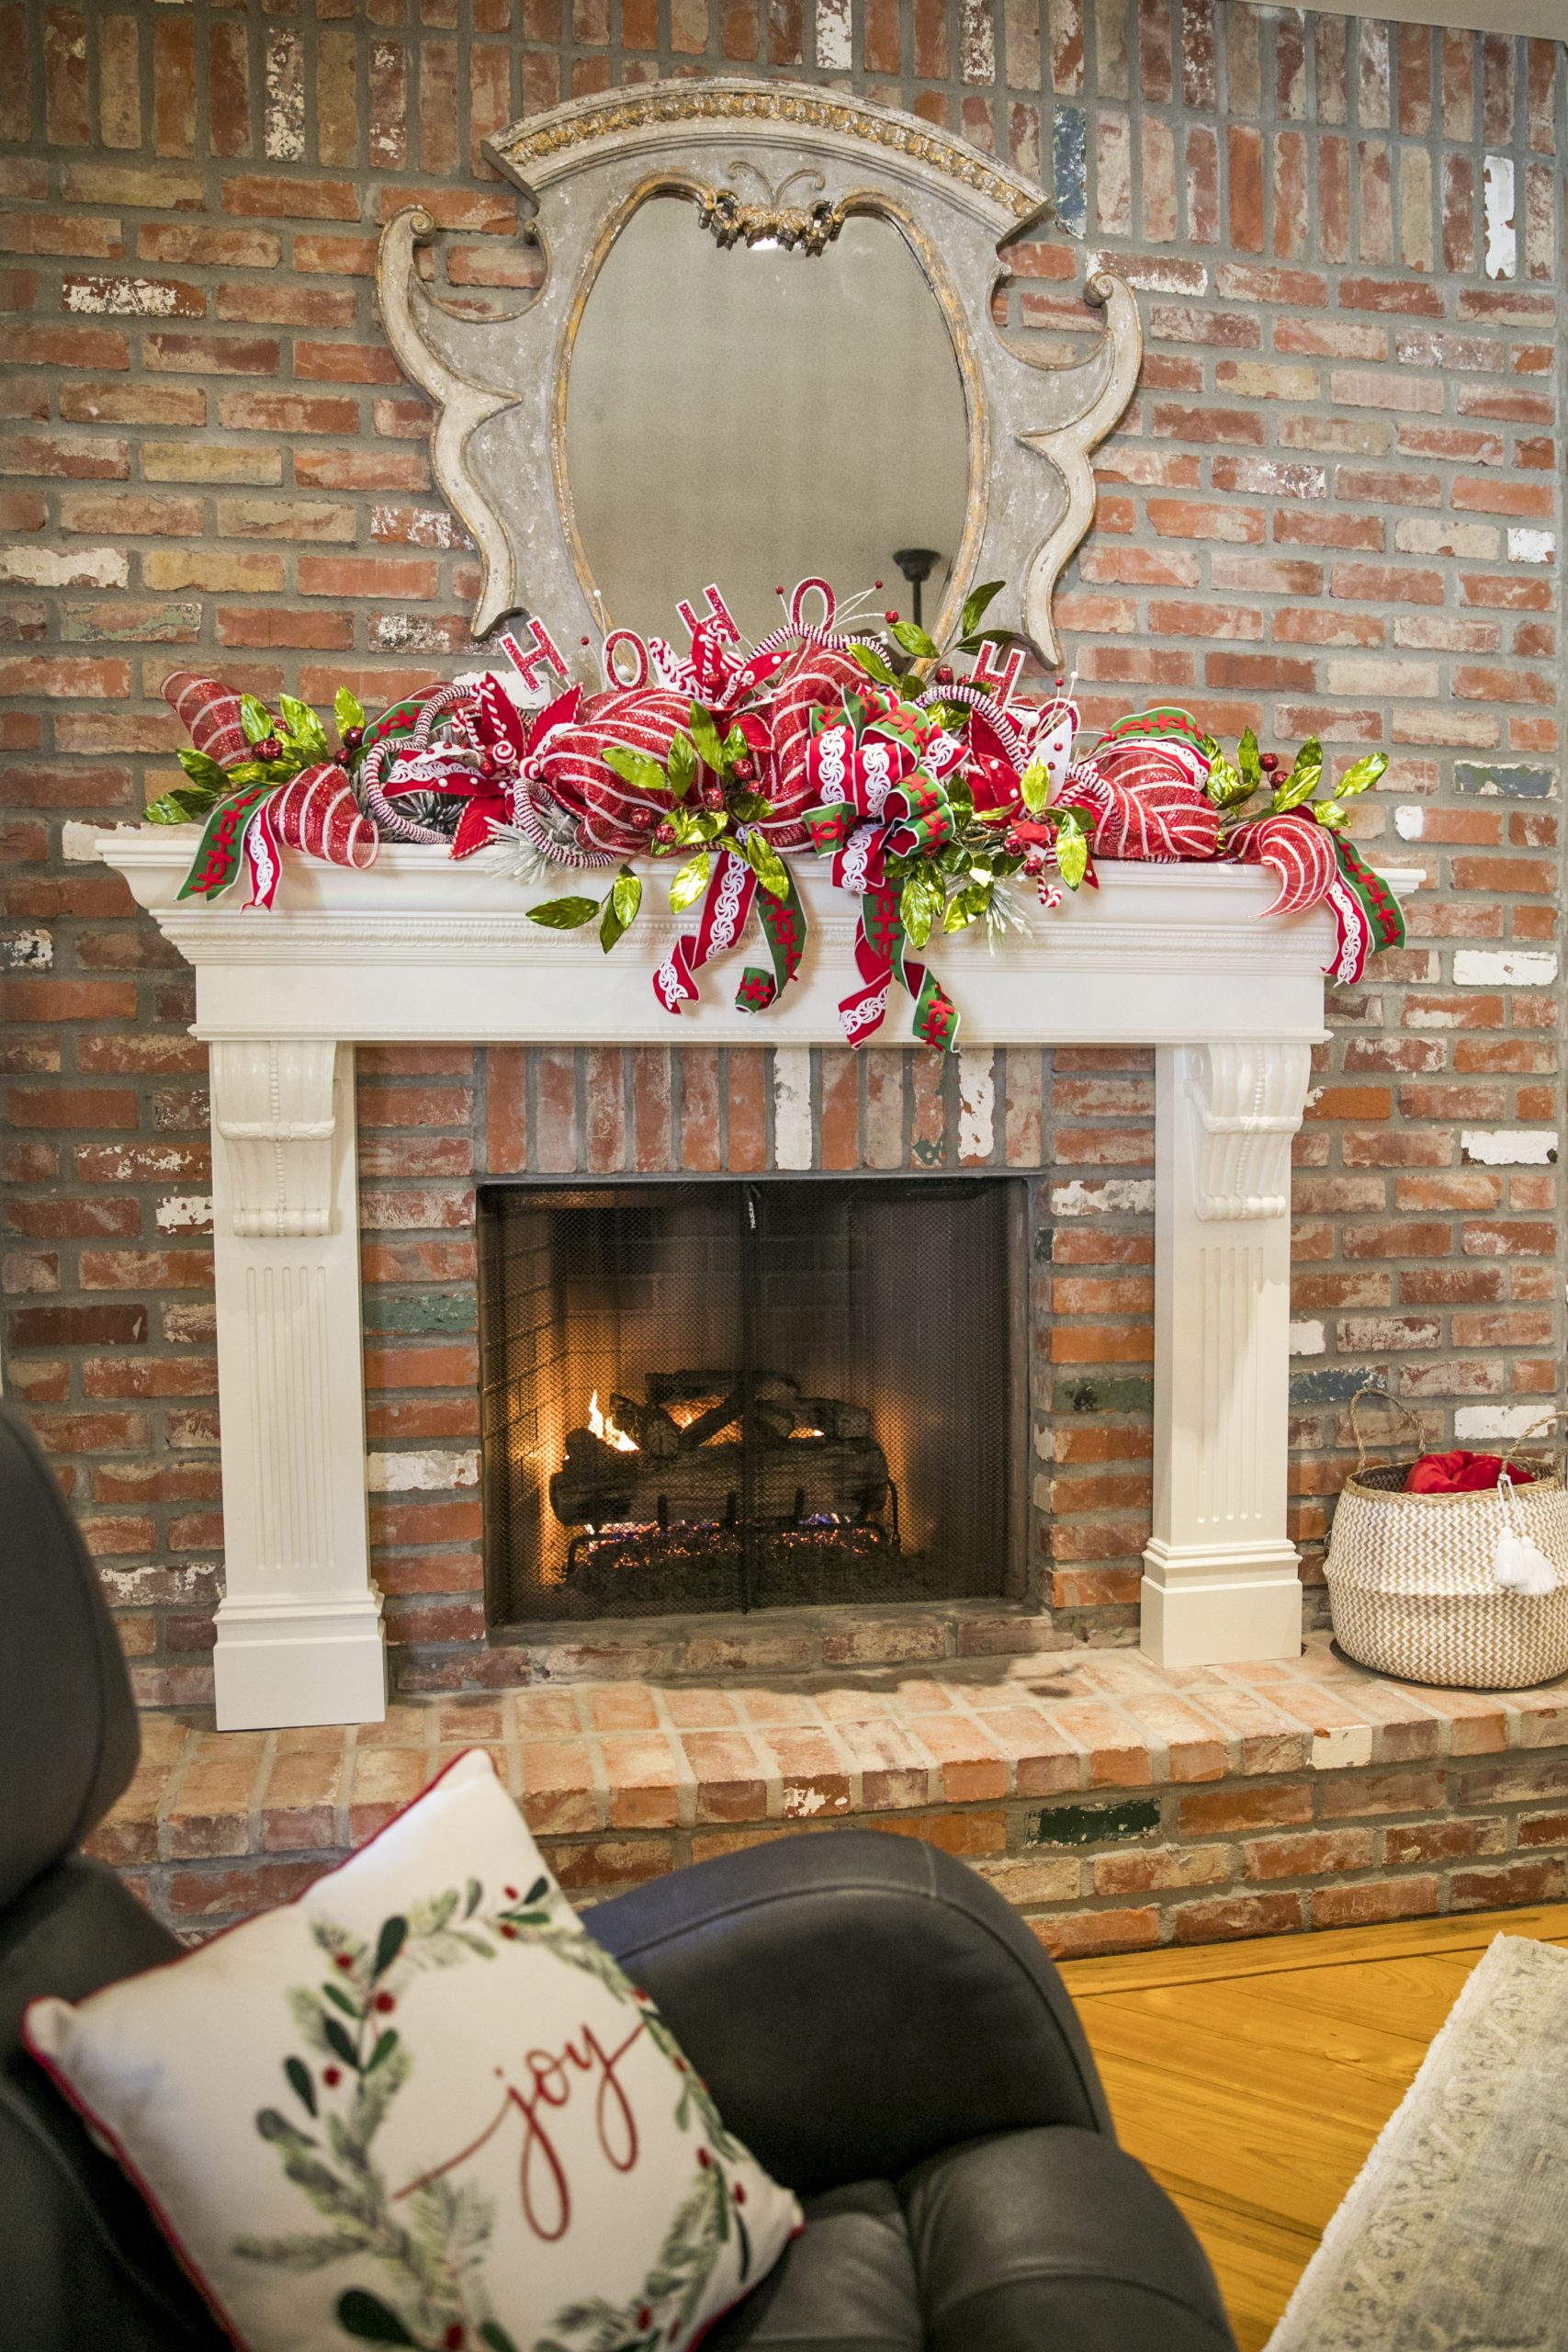 Chateau Chic POV Christmas House 4 2020  (Misty Leigh McElroy) 11/9/20